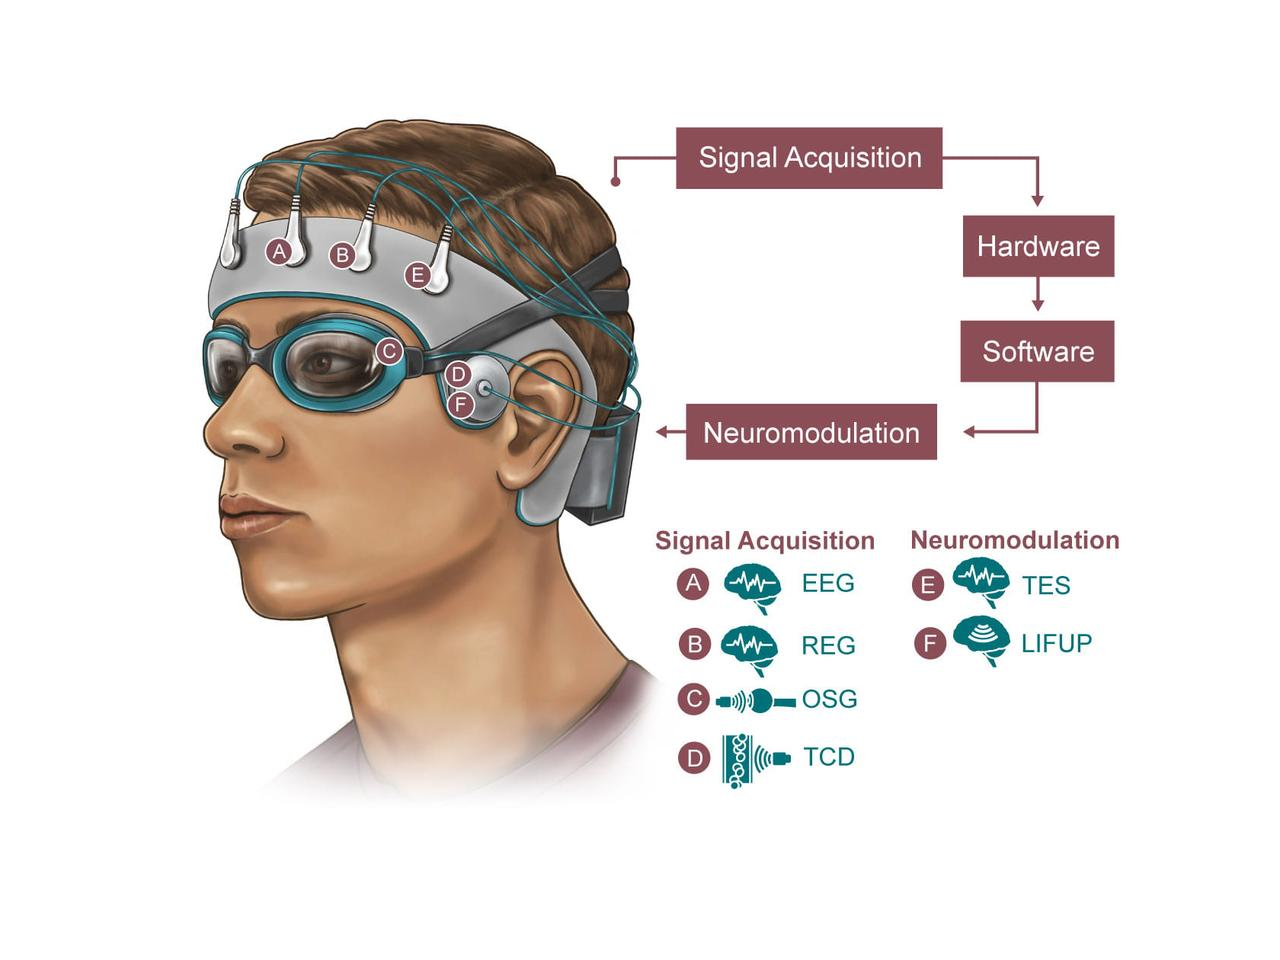 A diagram illustrating what the new sleep-tracking skullcap could look like and how it would work